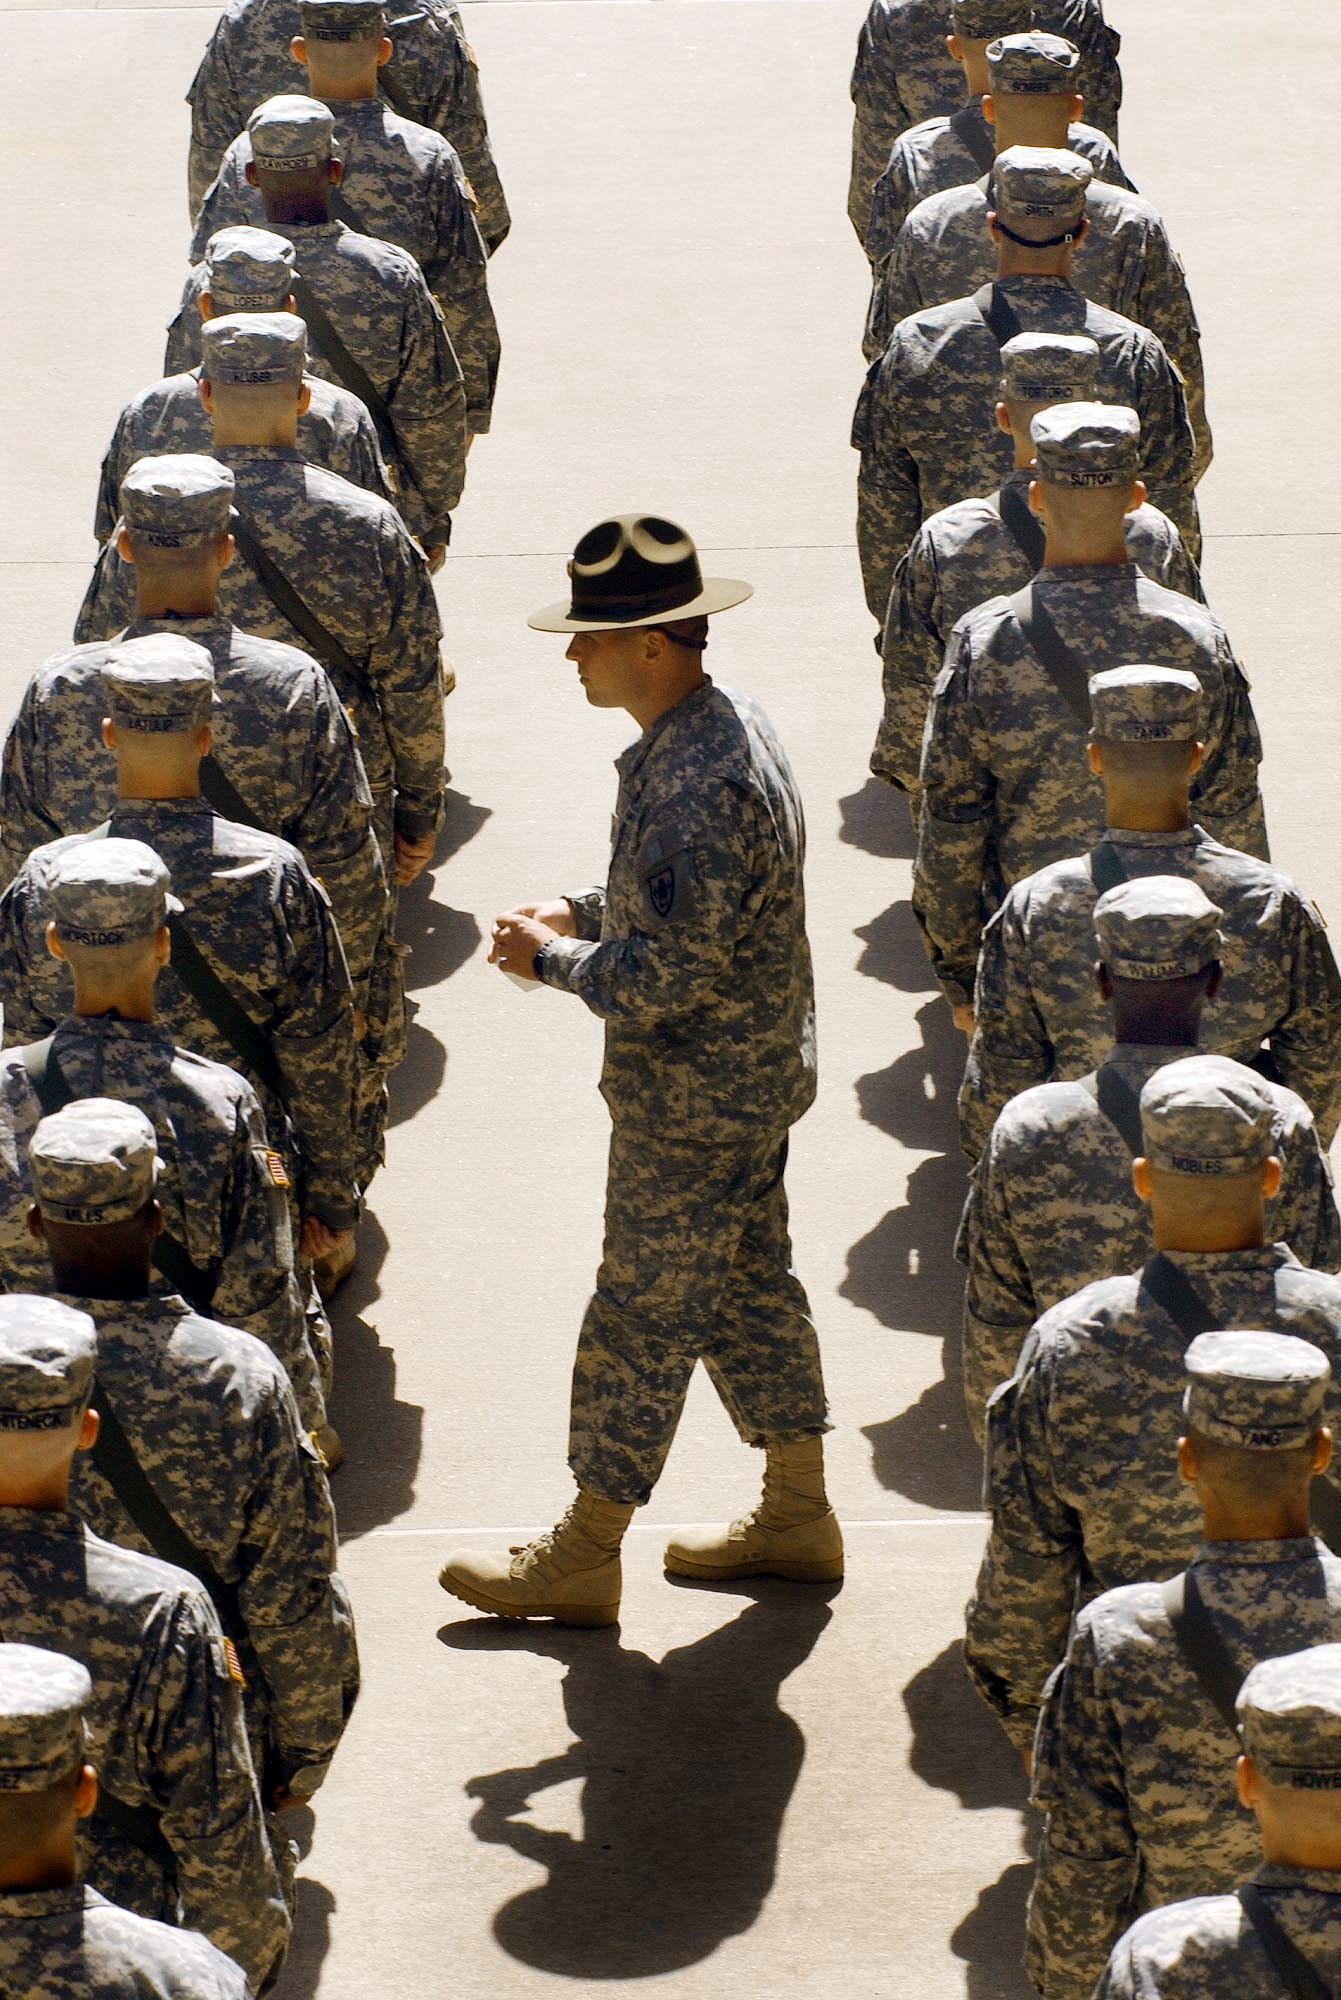 Find a soldier in the army